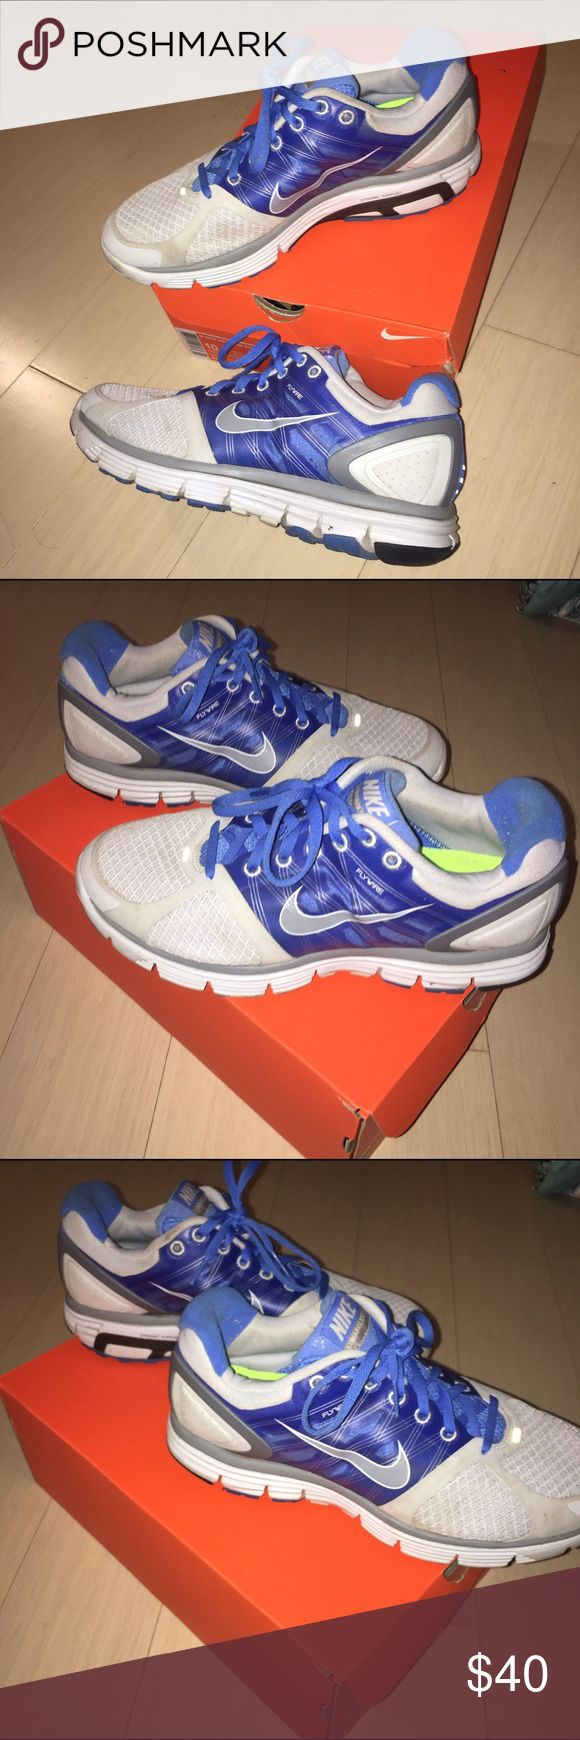 Nike Lunarglide 2 Flywire Sneakers. Size 10W. Bike Lunarglide 2 Flywire Sneakers. Women's Size 10. Worn a handful of times, minor embellishments but overall in great condition. Minimal wear on the bottoms of the sneakers. Original price an estimate. Nike Shoes Athletic Shoes